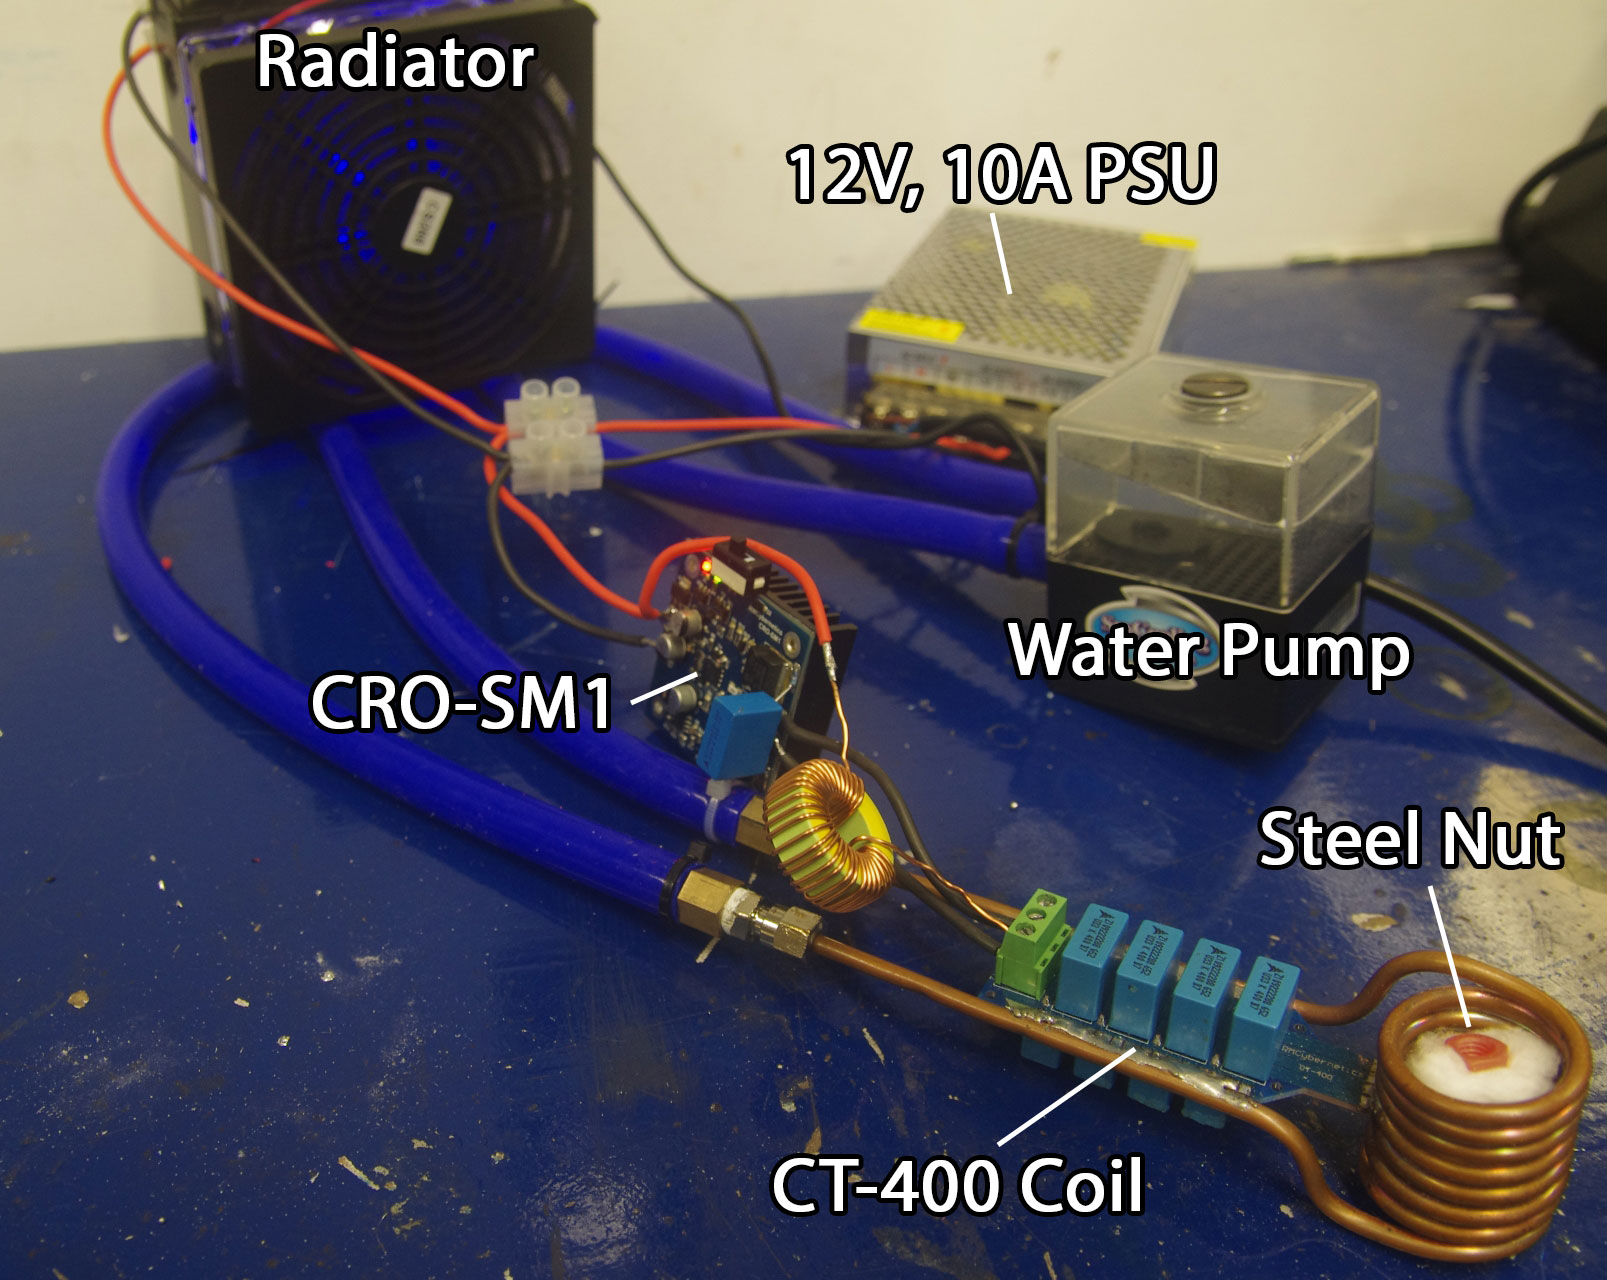 Zvs Power Resonator Cro Sm1 Custom Electronics Quality Pwm Measurement Of Electrical Quantities With A